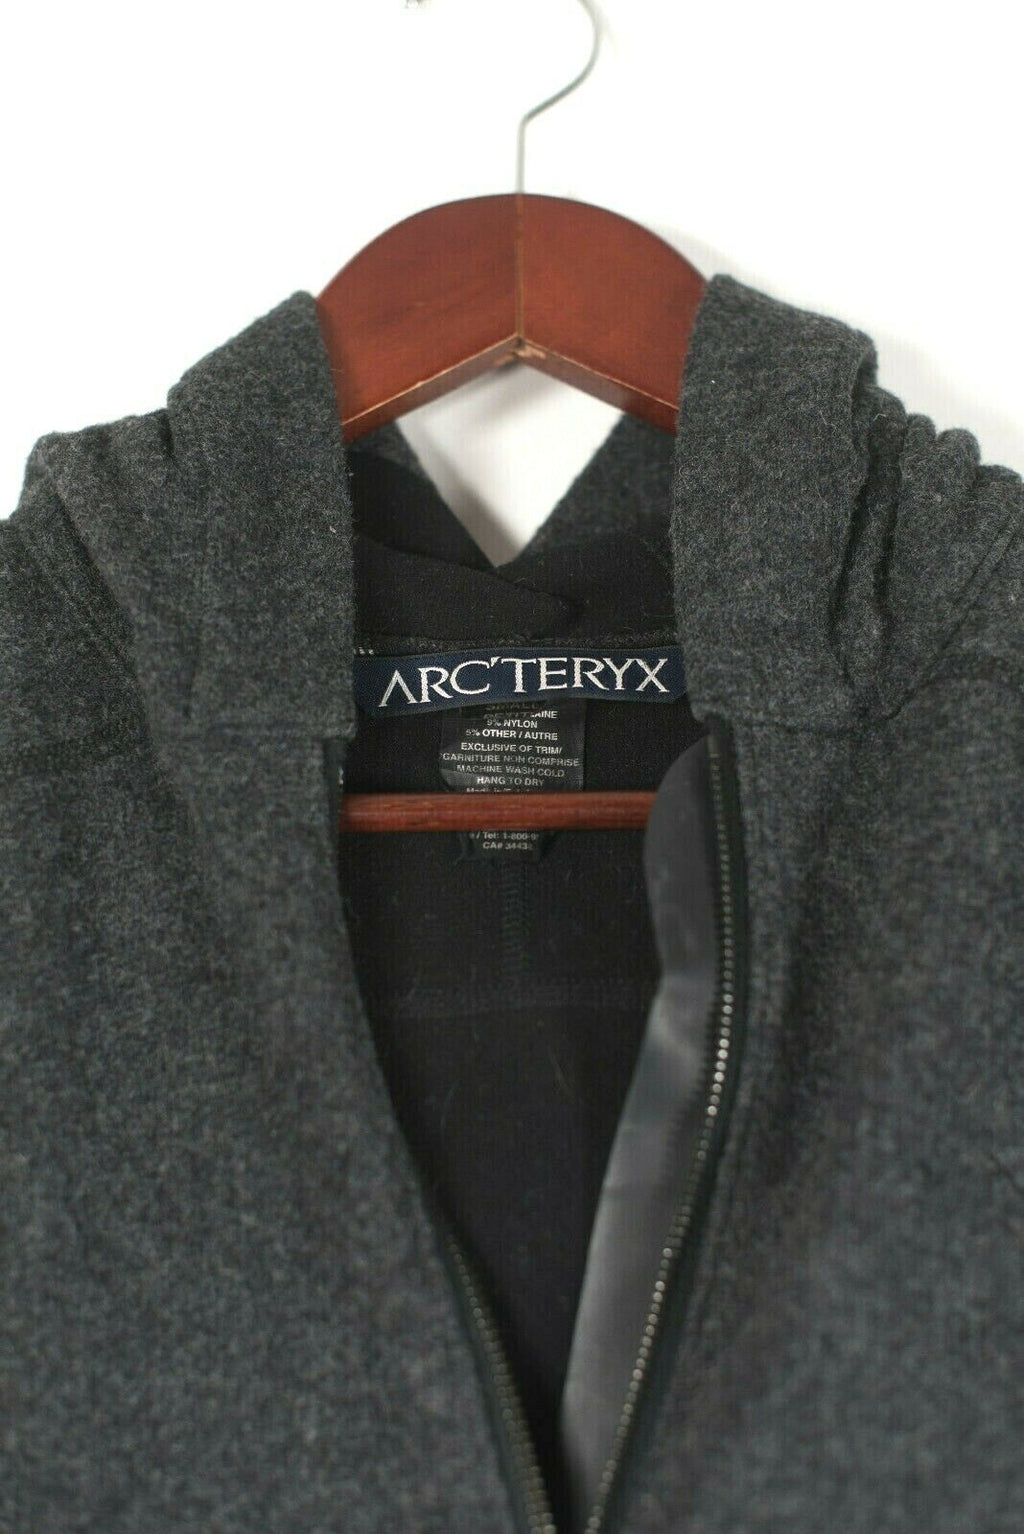 Arc'teryx Mens Small Charcoal Grey Gothic Hoodie Zip Up Jacket Warm Italian Wool